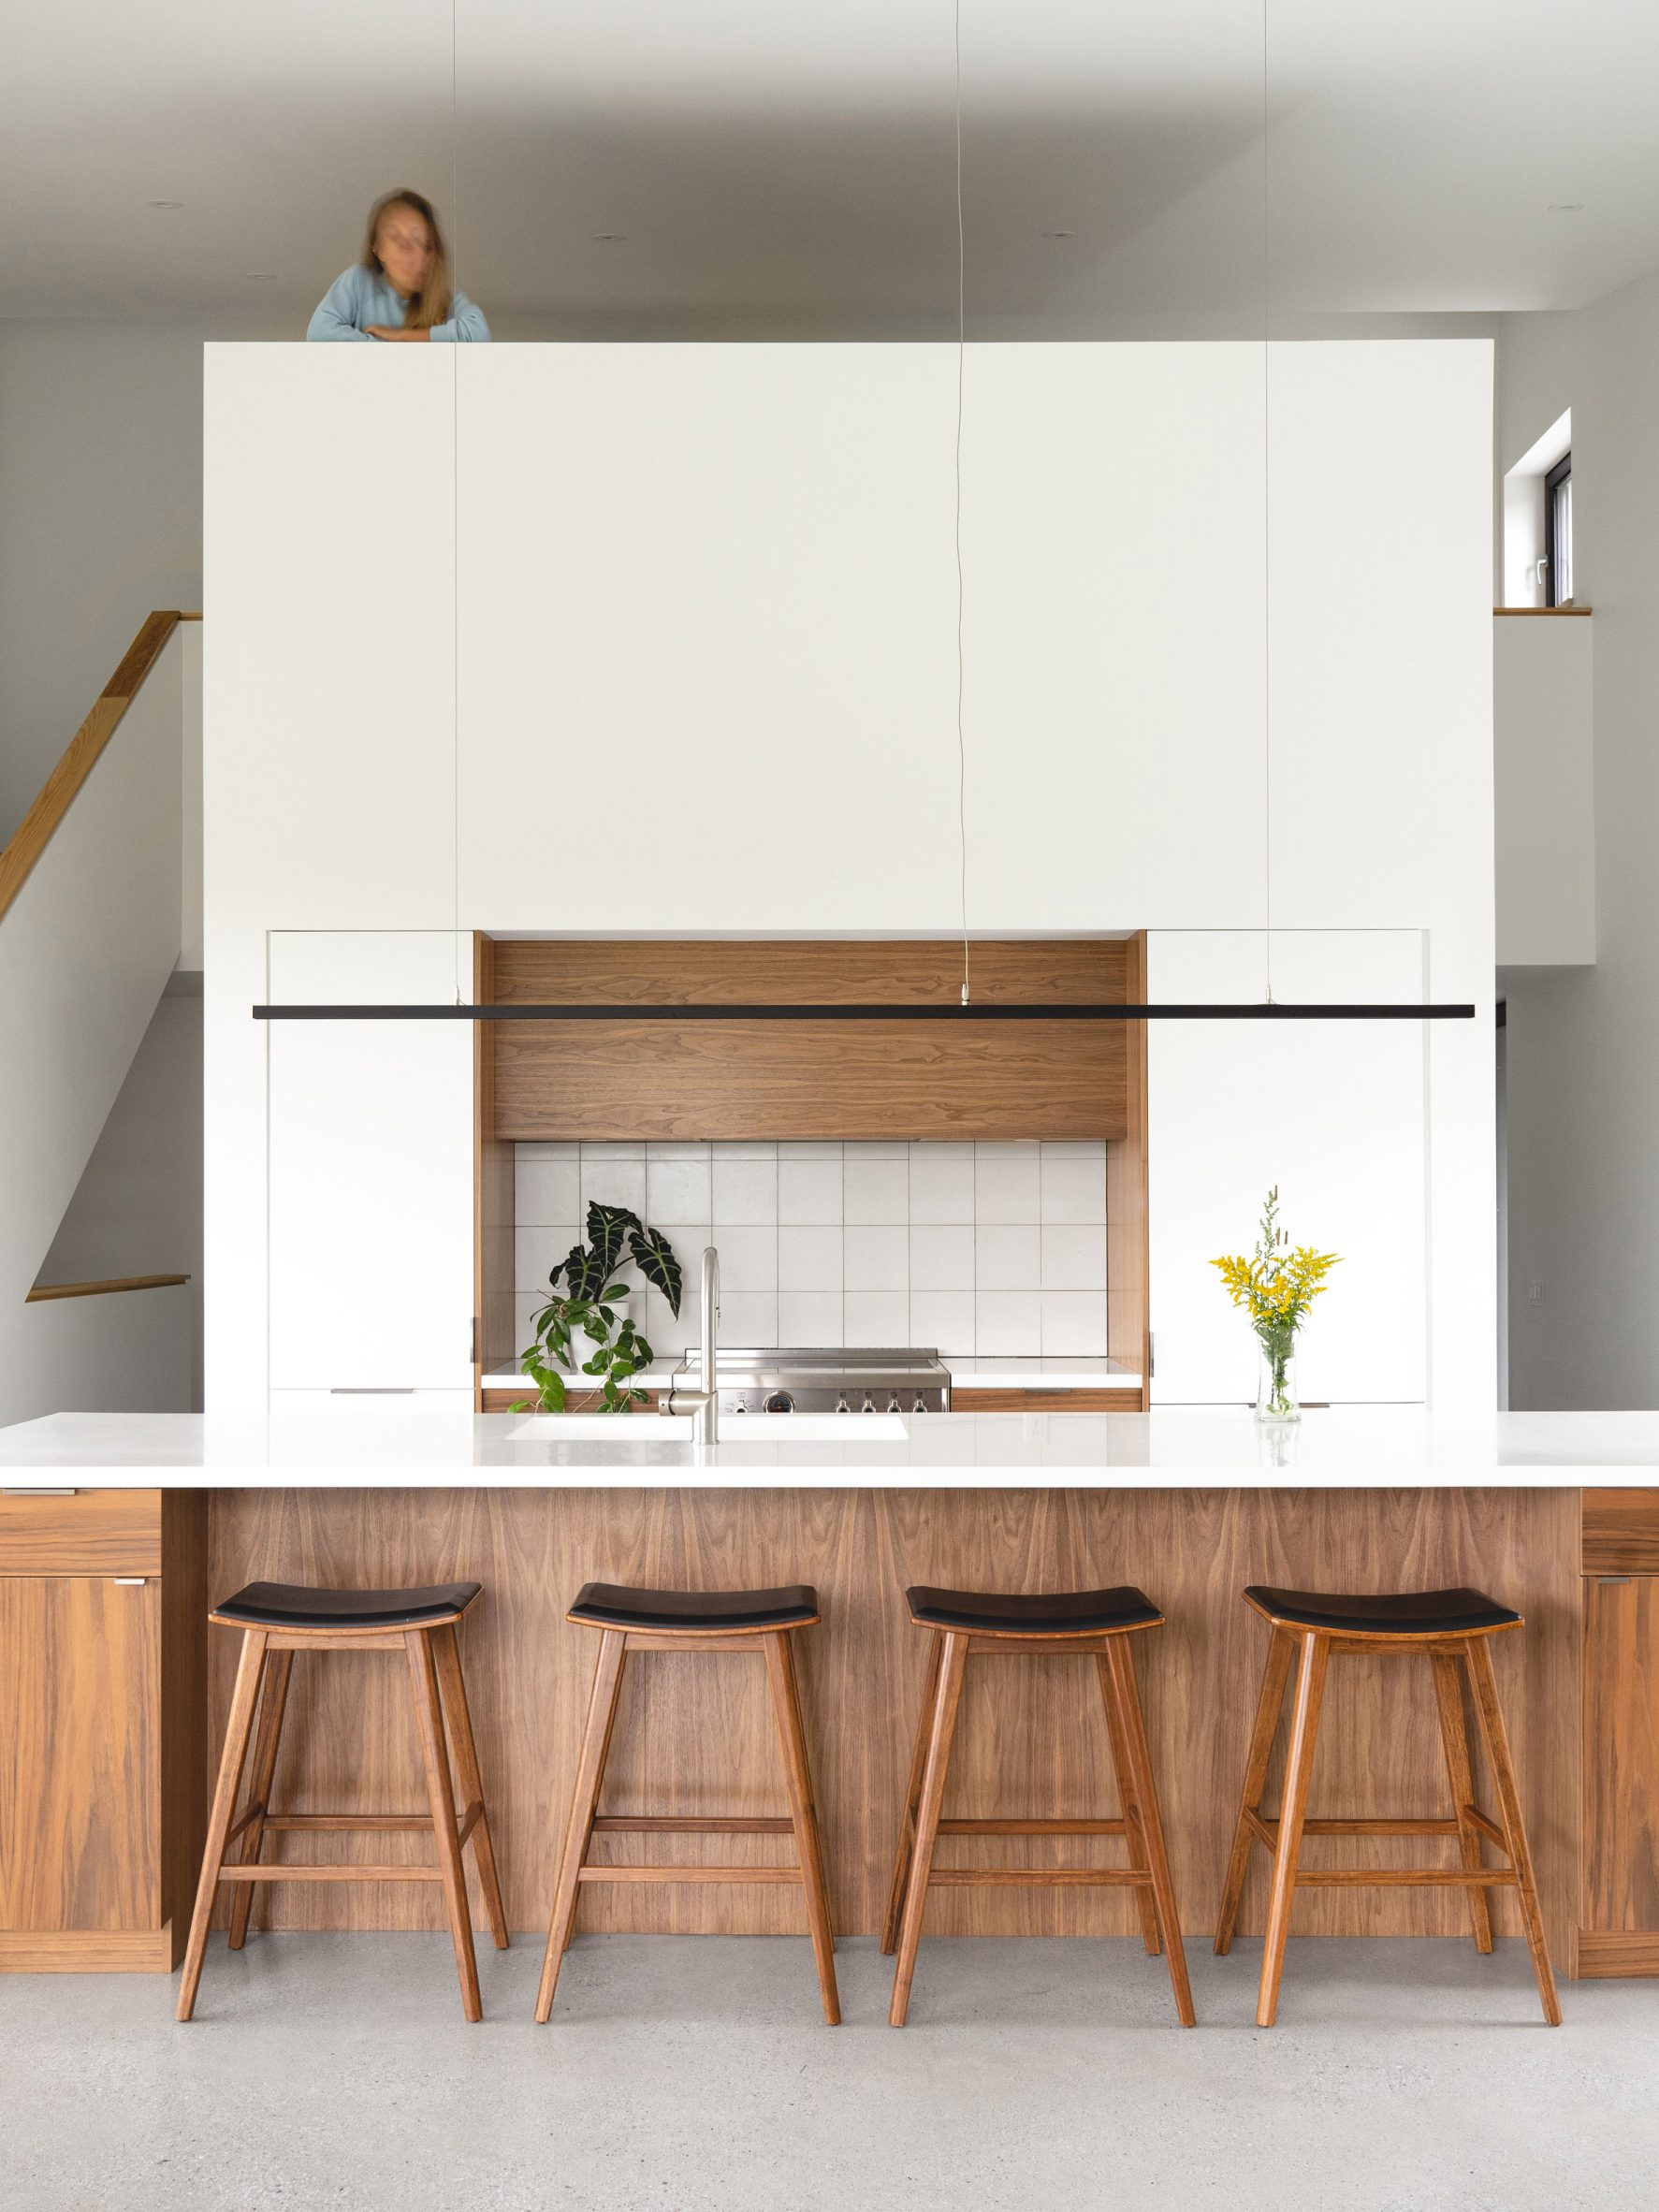 Kitchen with mezzanine space above